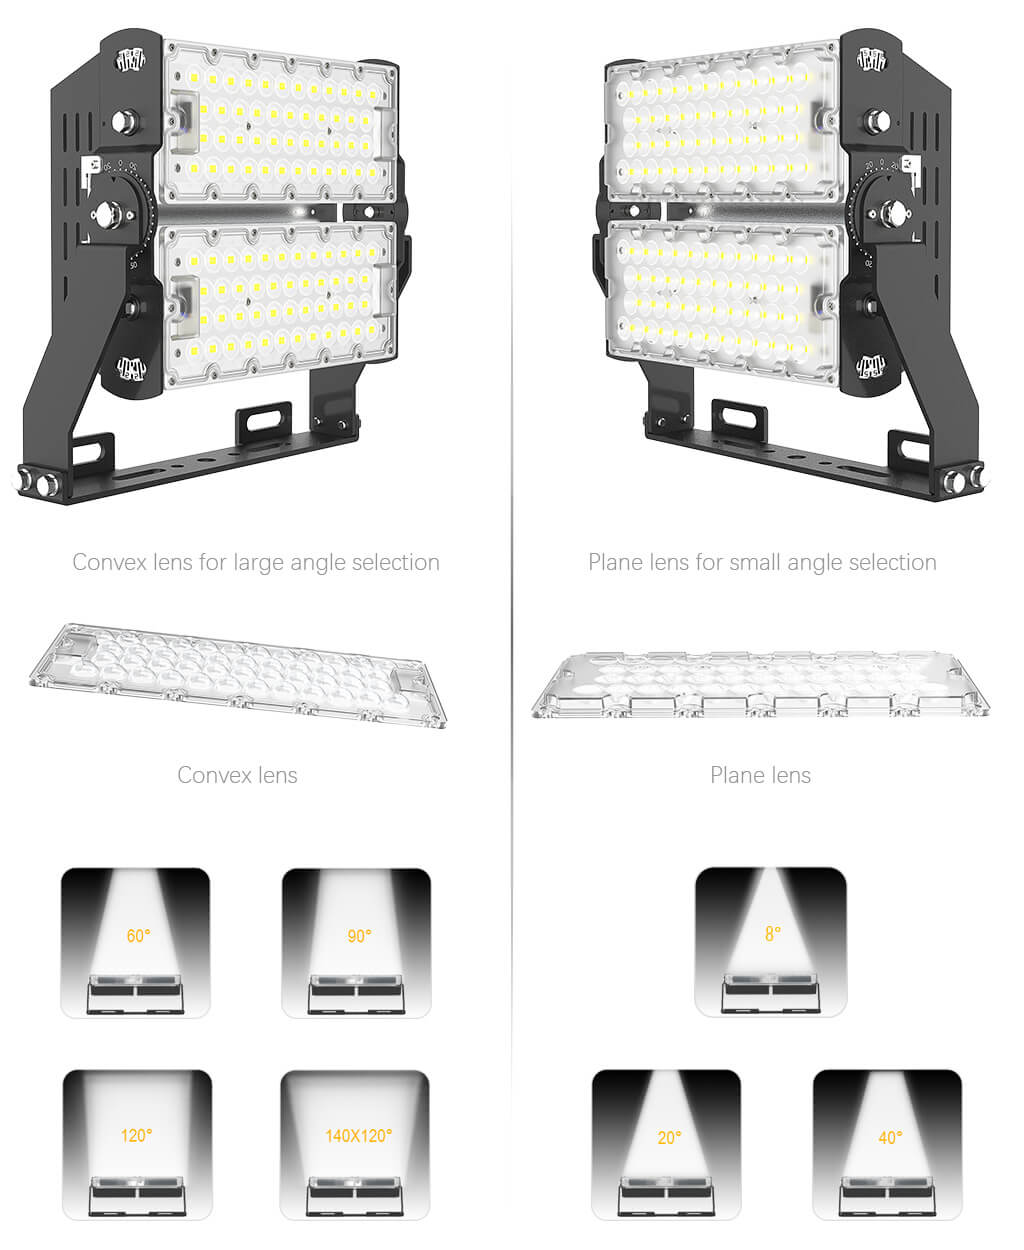 efficient led exterior floodlight seriesb factory for parking-13